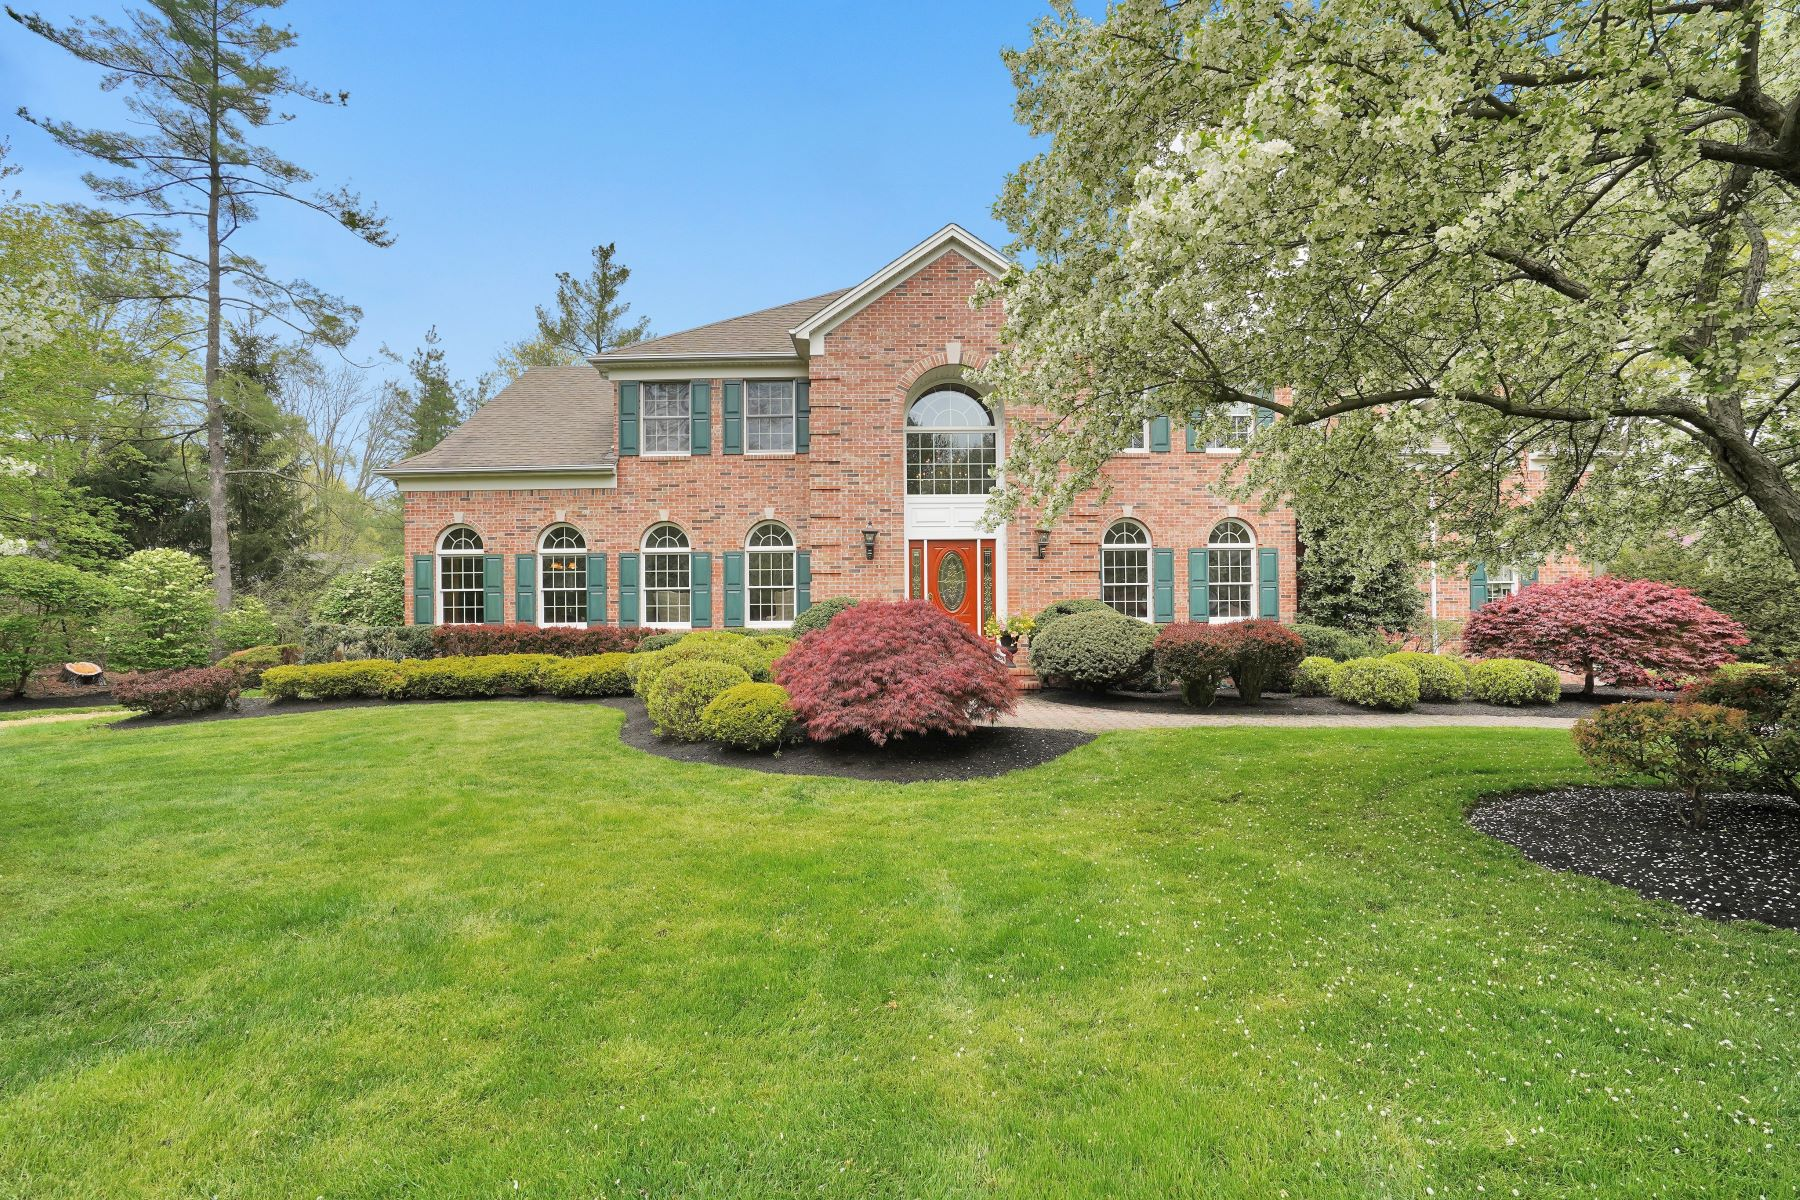 Single Family Homes for Sale at Stately Residence 21 Saint Nickolas Way Basking Ridge, New Jersey 07920 United States